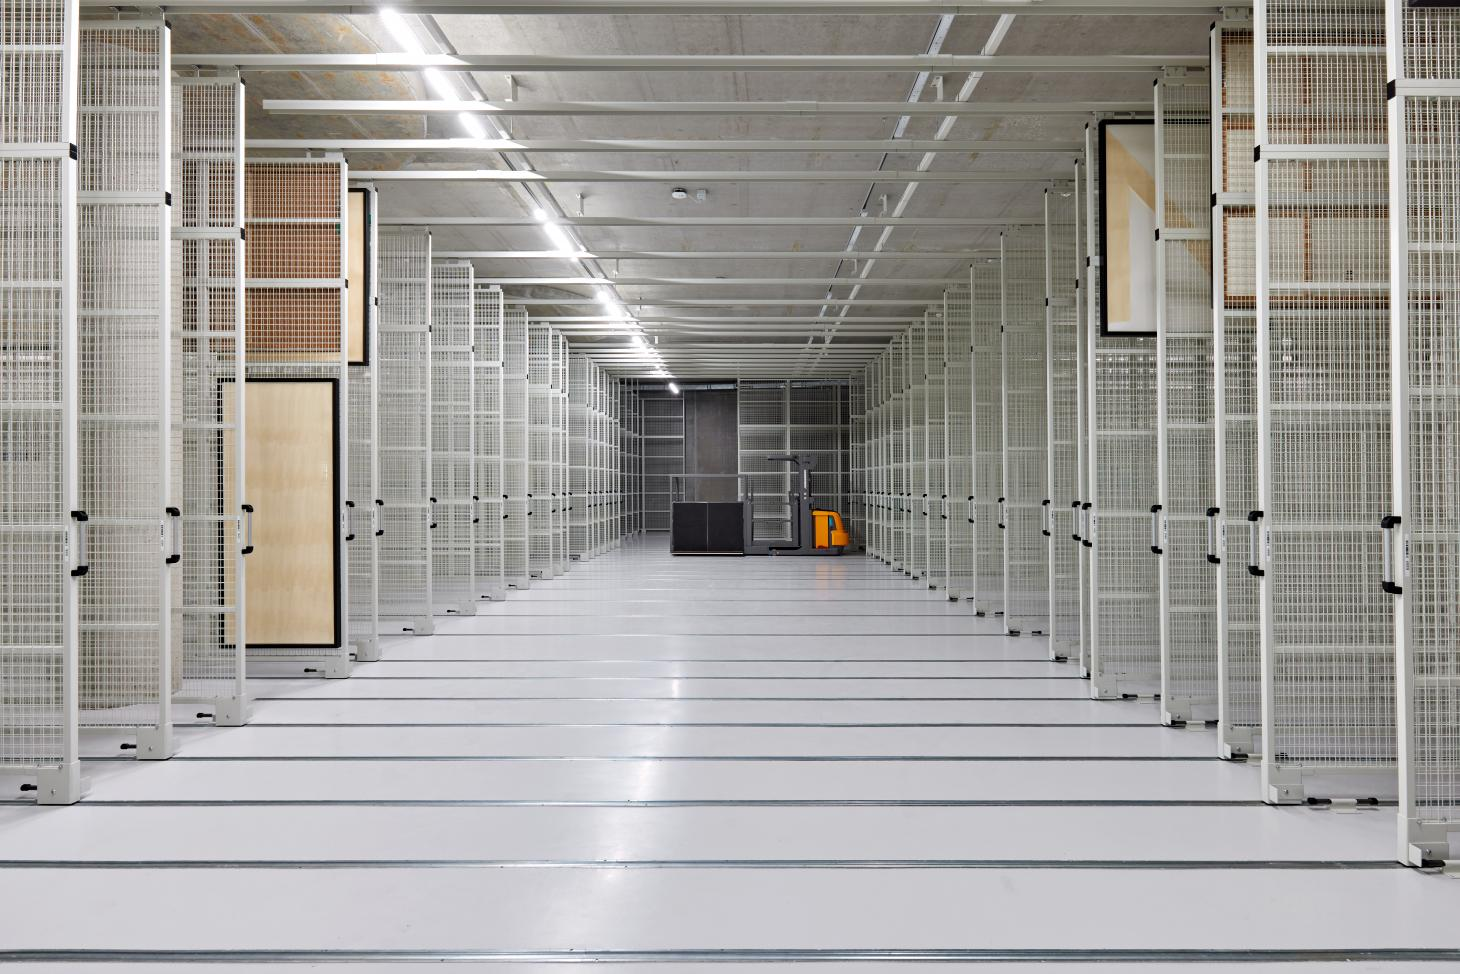 art storage is available for all to see at the Boijmans Depot in Rotterdam